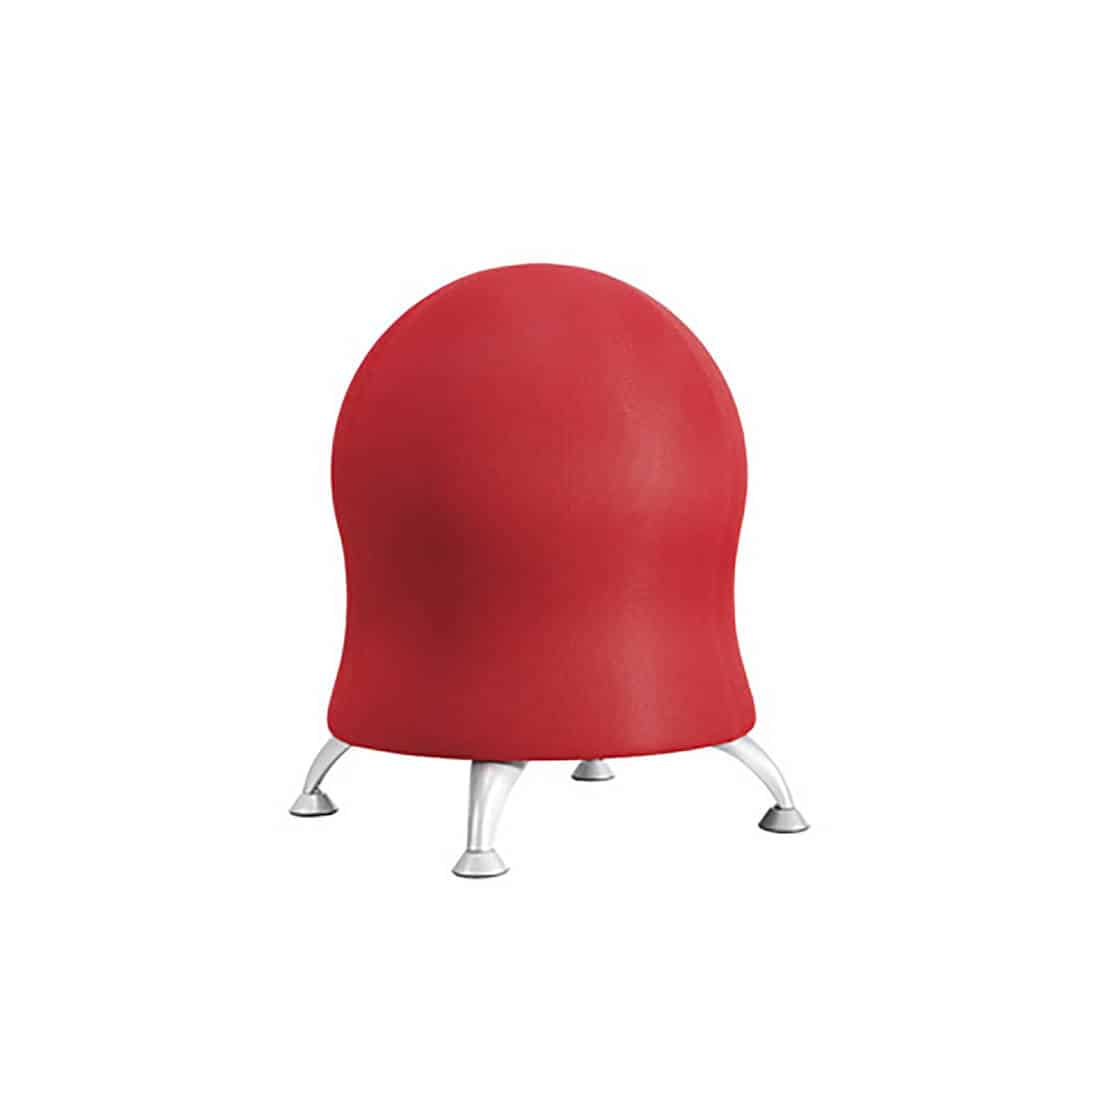 Zenergy Ball Chair fabric ball seat 23 in crimson light assembly guest chairs side seating